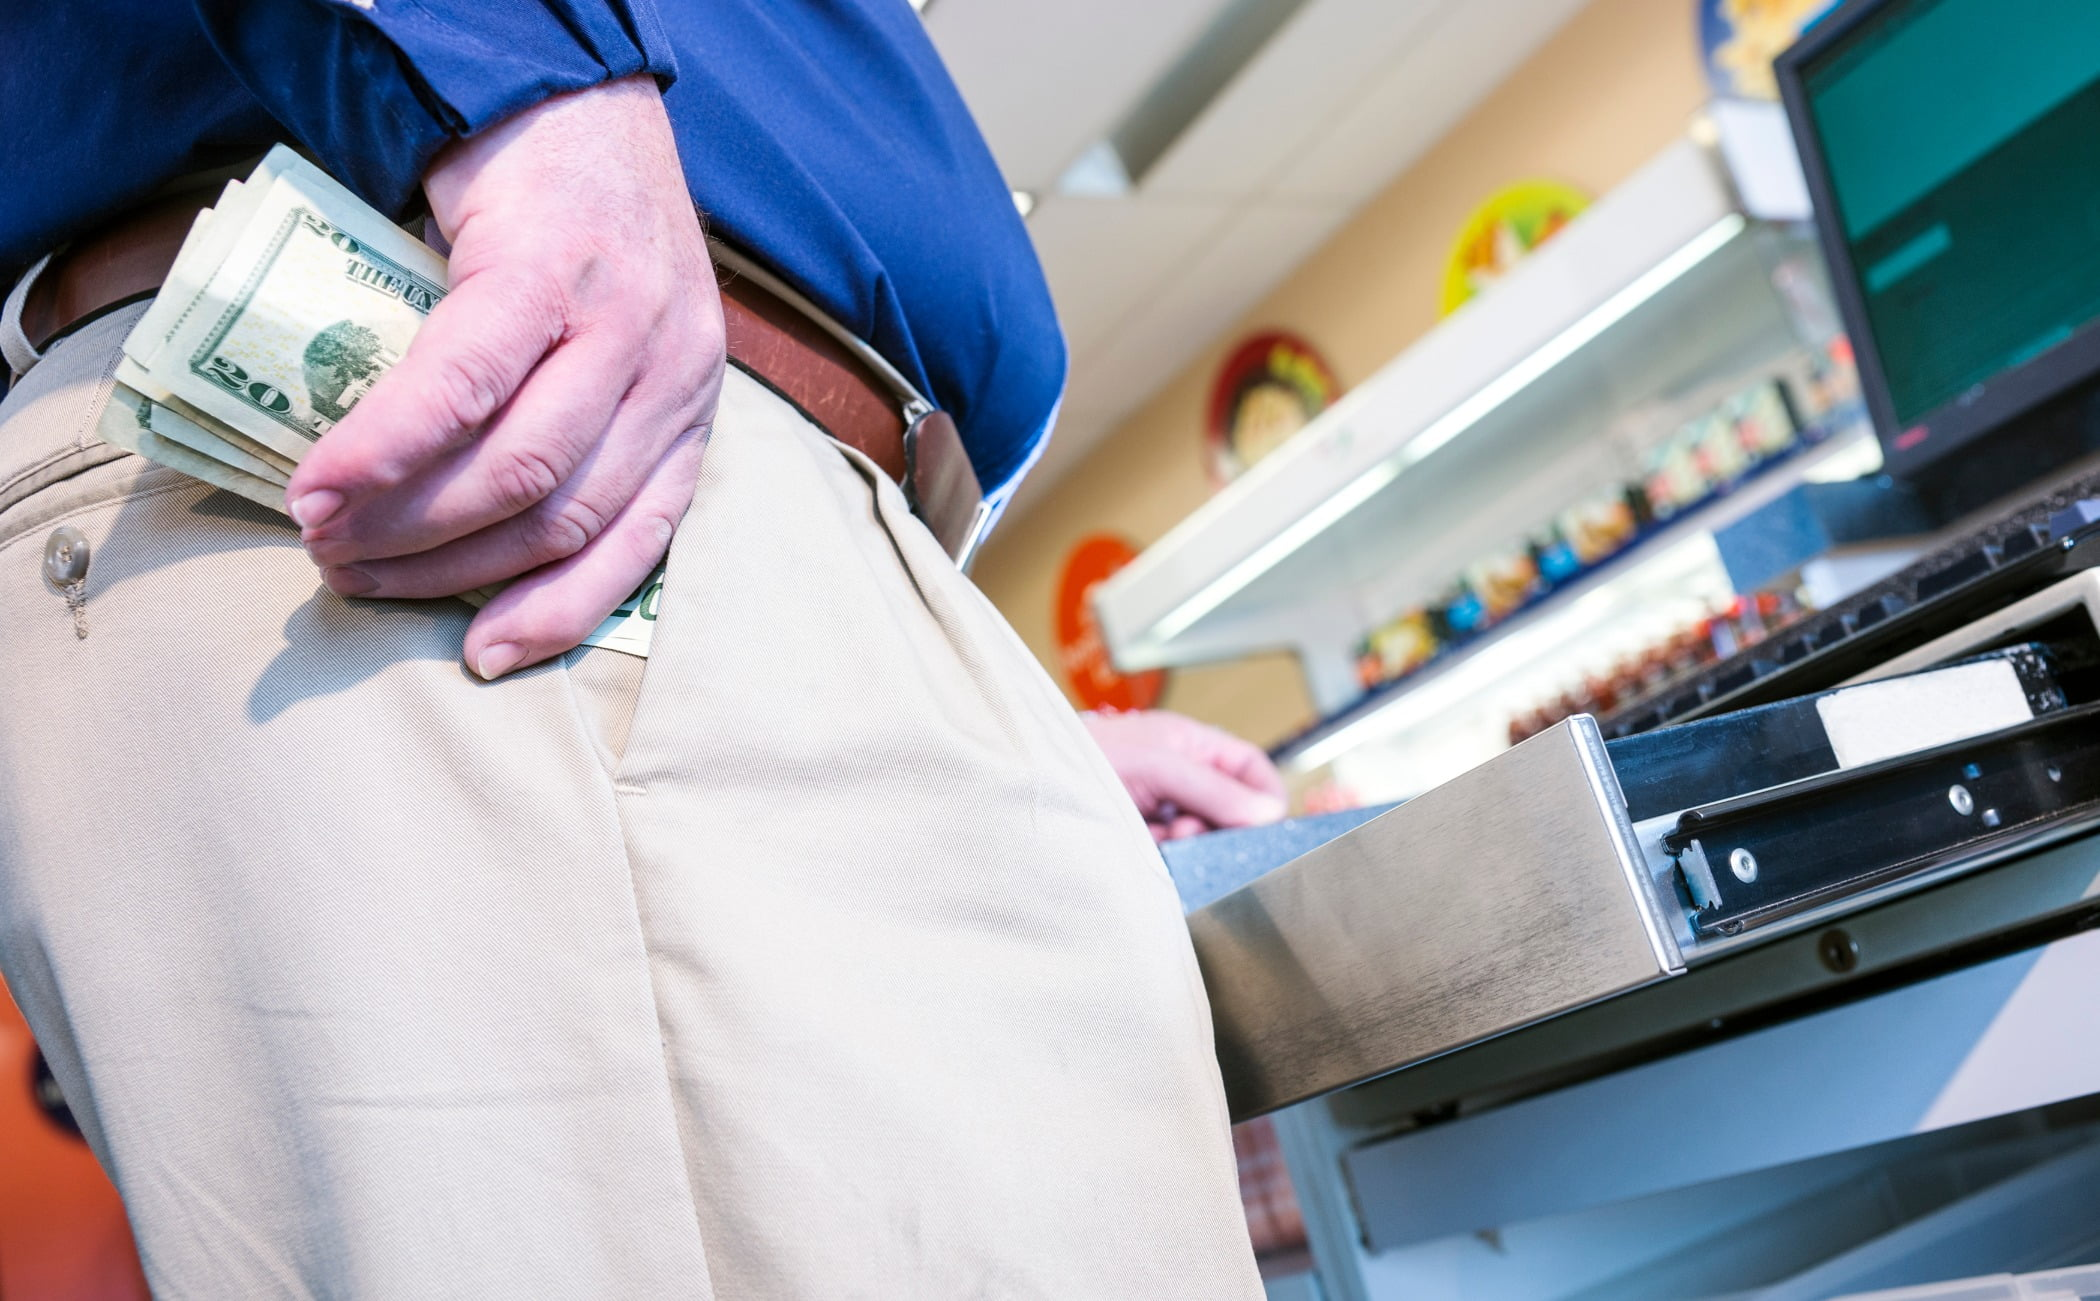 A concept for employee theft and loss prevention. An employee stealing money from a cash register in a retail store.